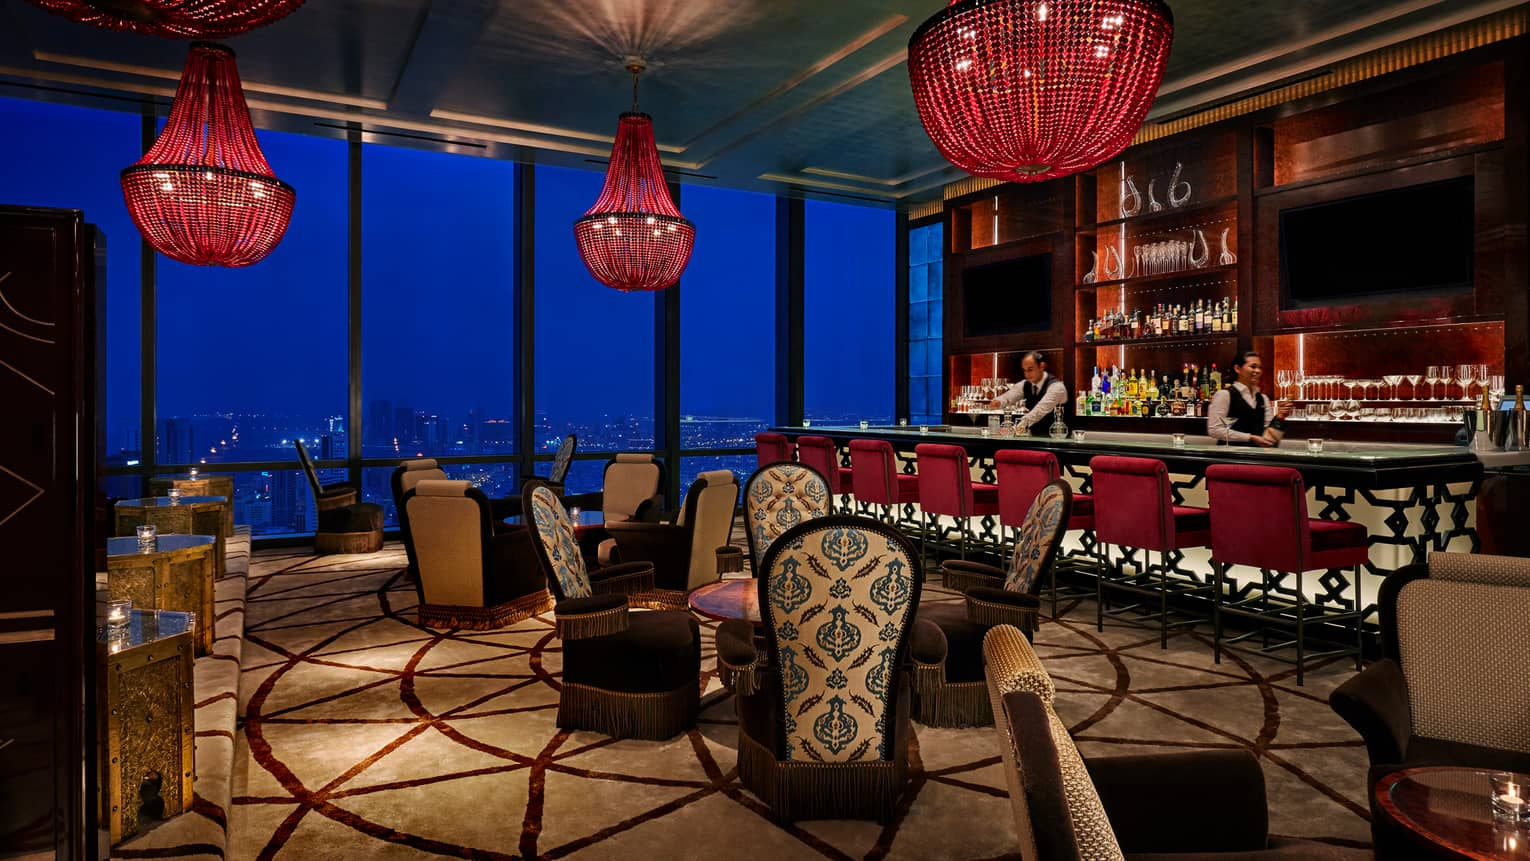 Dimly-lit Blue Moon lounge with large red beaded chandeliers, high-back plush chairs with decorative prints, bar